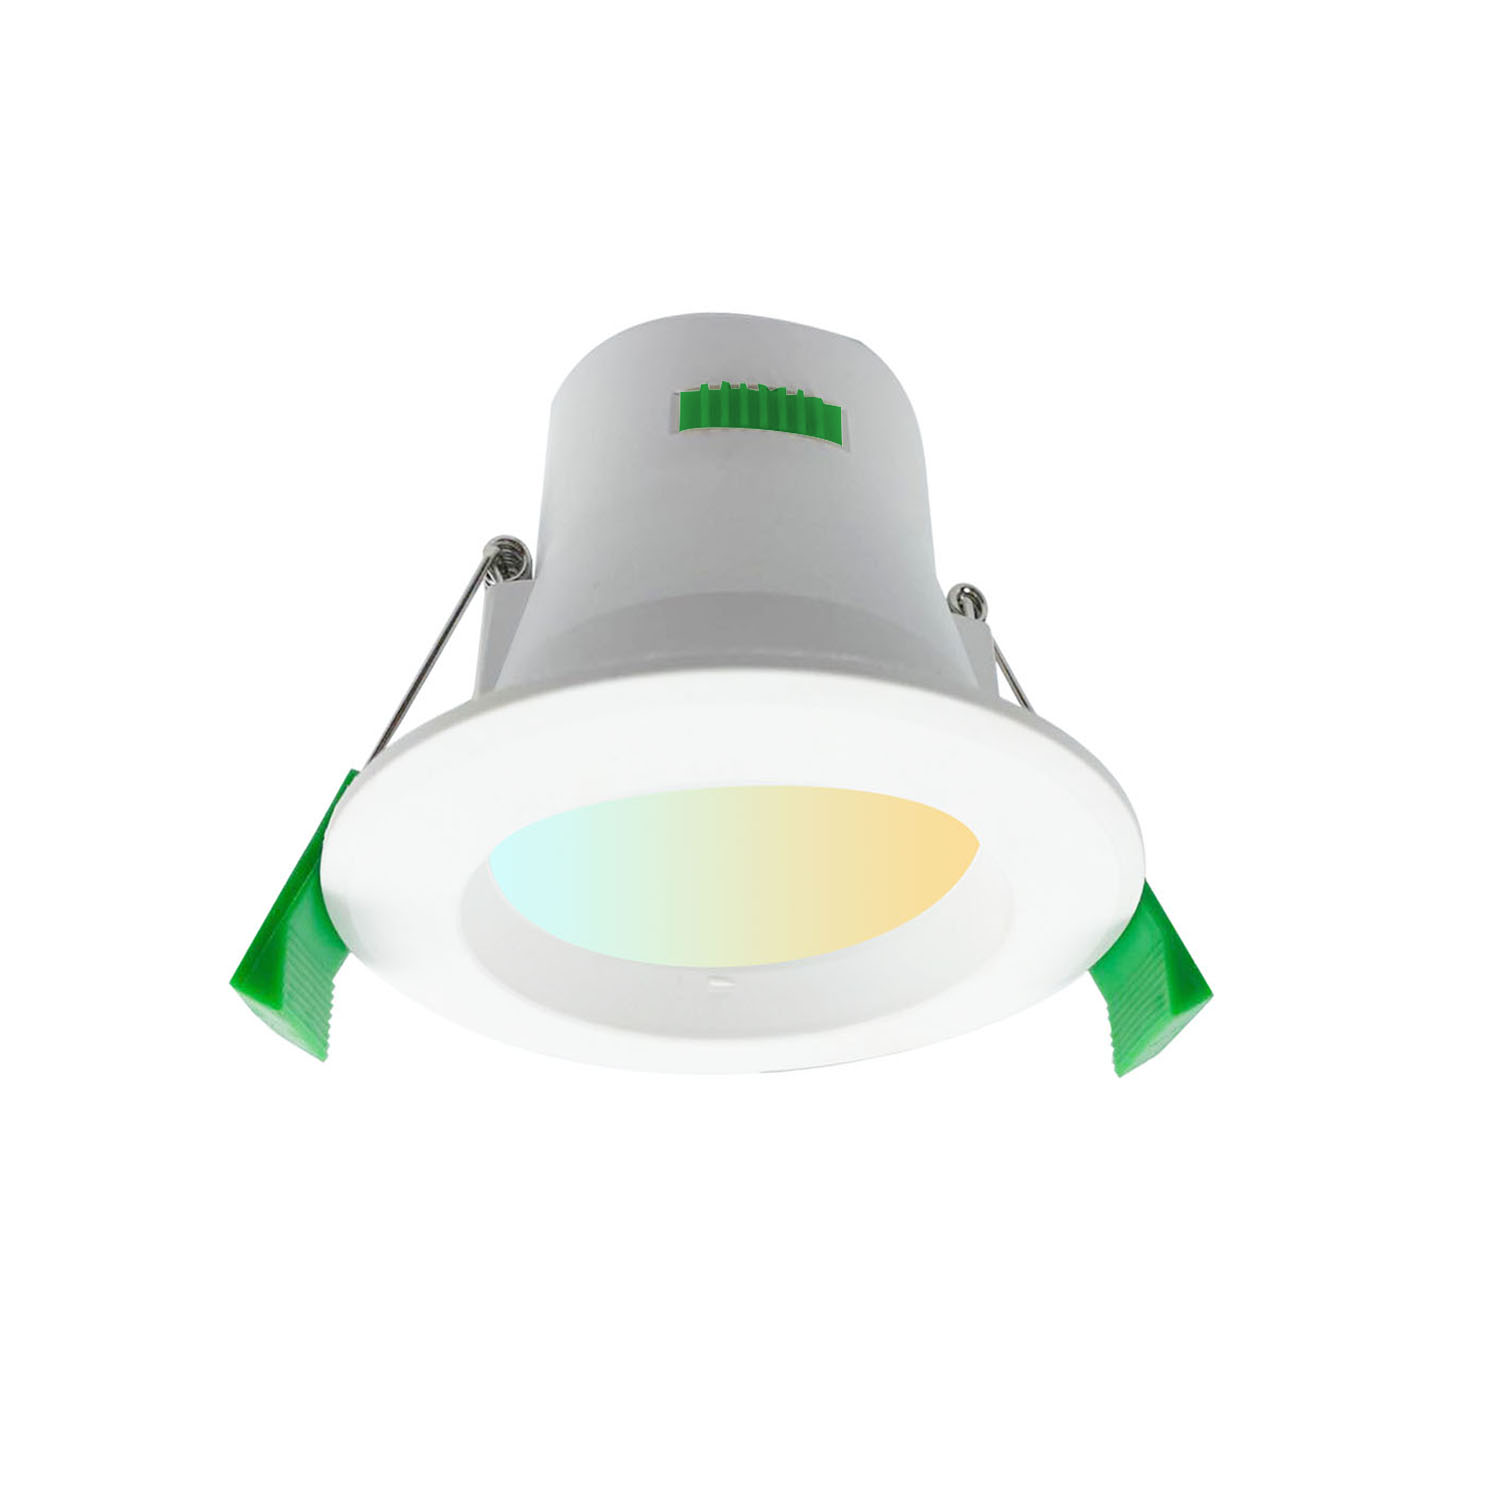 90mm Cut-out  WIFI/ Bluetooth Smart CCT Changeable SMD Downlight Featured Image